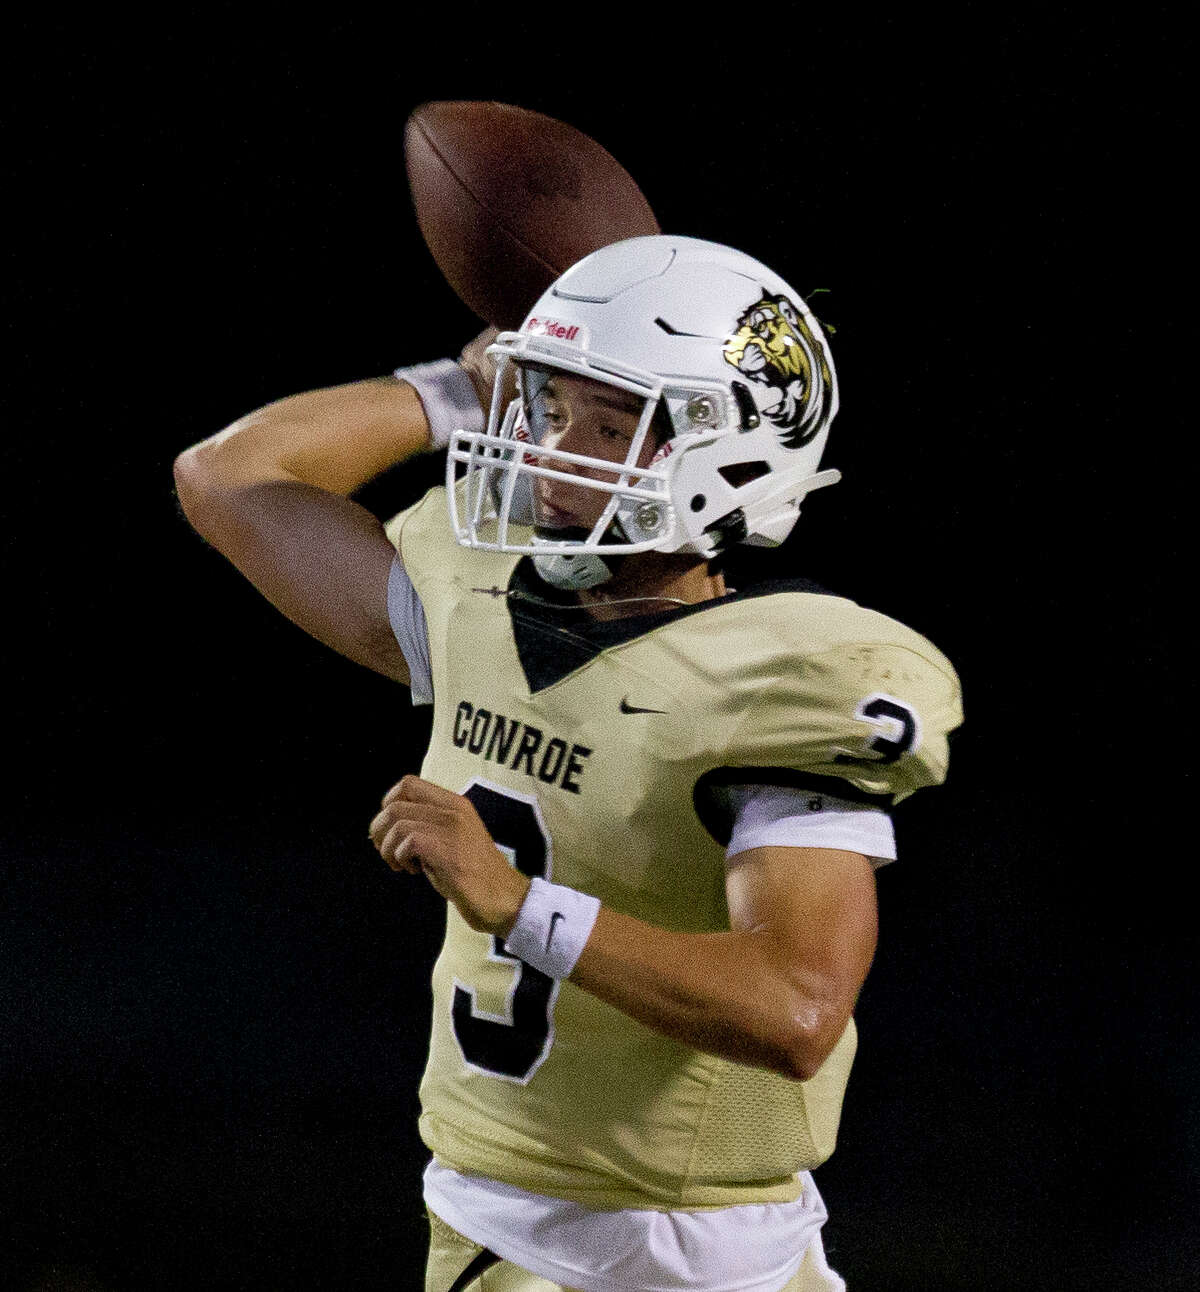 Conroe quarterback Christian Pack (3) throws a pass during the third quarter of a non-district high school football game at Buddy Moorhead Stadium, Friday, Aug. 30, 2019, in Conroe.